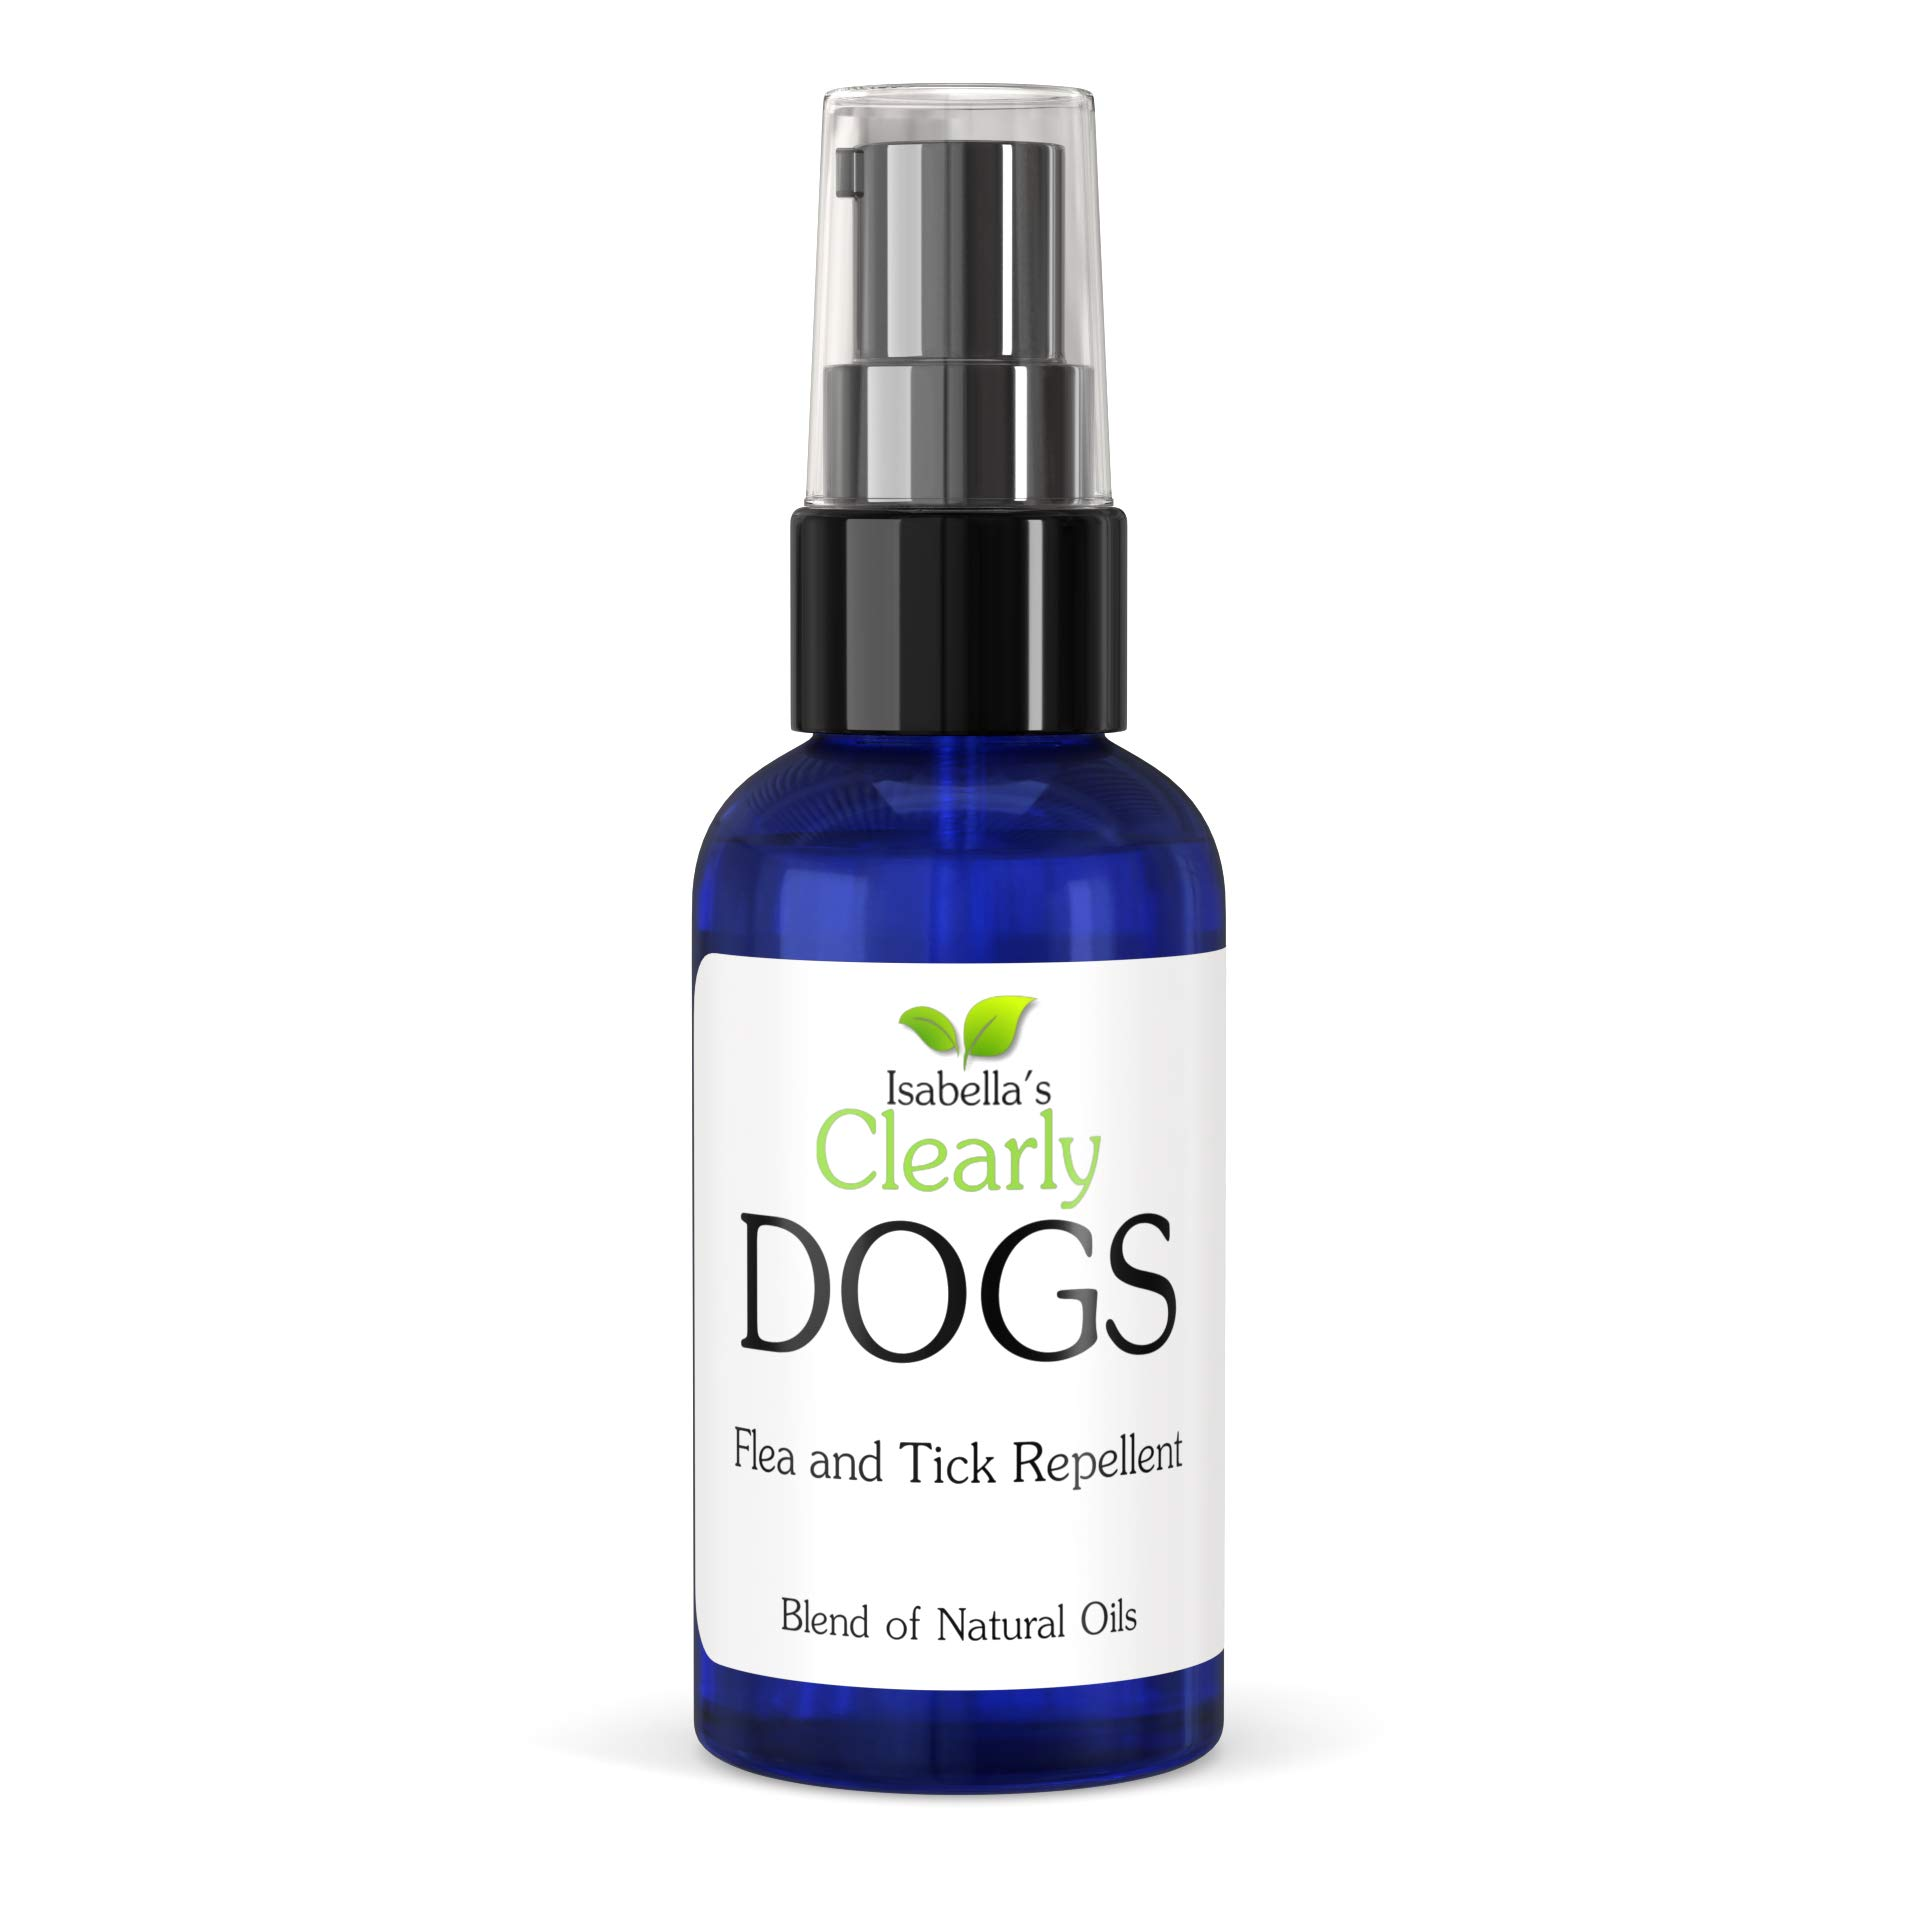 Clearly Dogs, Natural and Safe Tick and Flea Repellent, Non Toxic Highly Effective Proven Formula of Topical Oils Including Lavender, Lemongrass and Cedarwood. Made in USA (2 Oz) by Isabella's Clearly